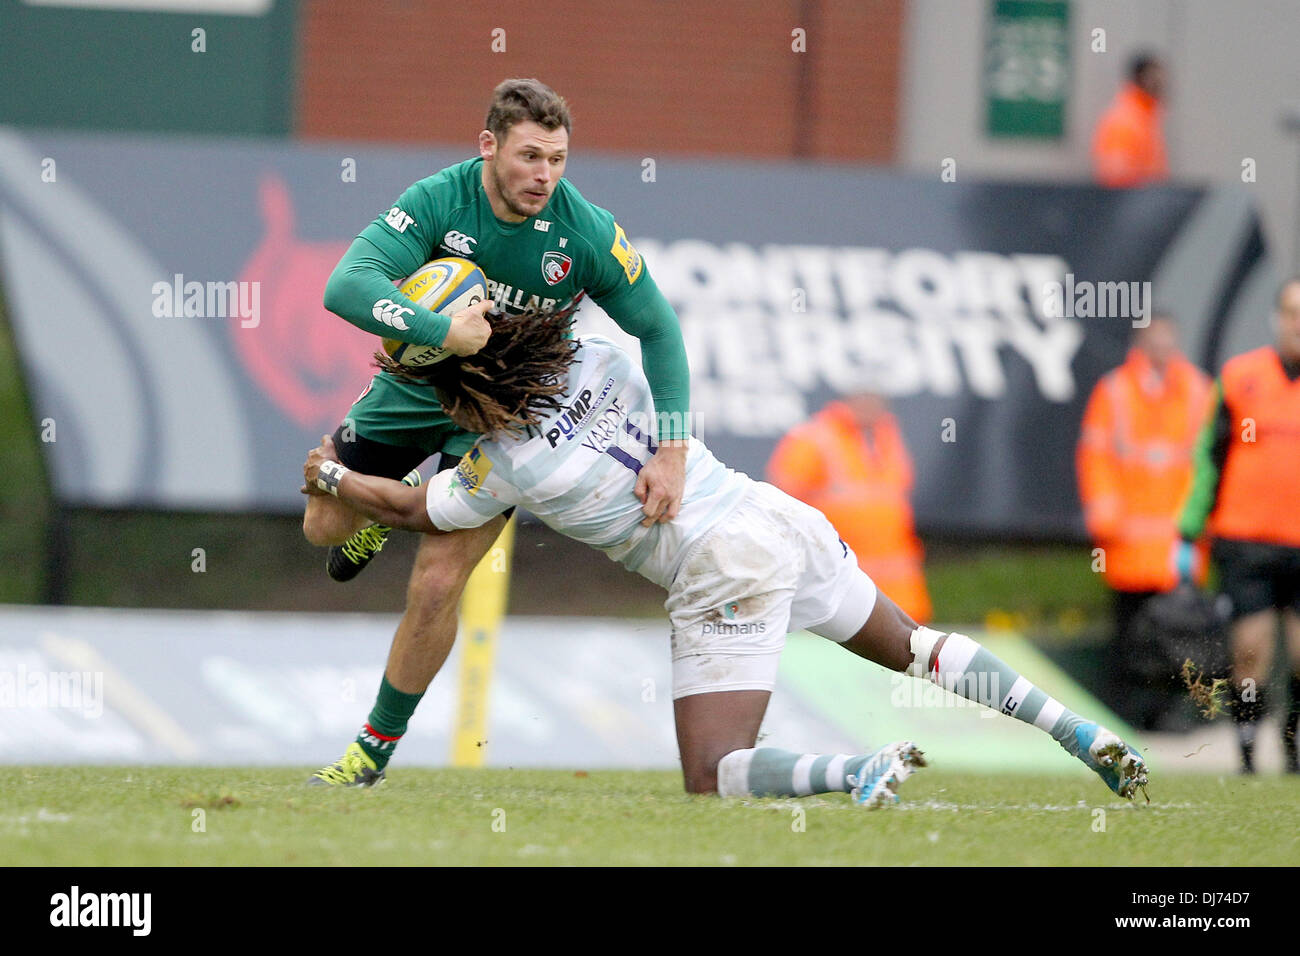 Leicester, UK. 23rd Nov, 2013. Niall Morris of Leicester Tigers is tackled by Marland Yarde of London Irish during - Stock Image